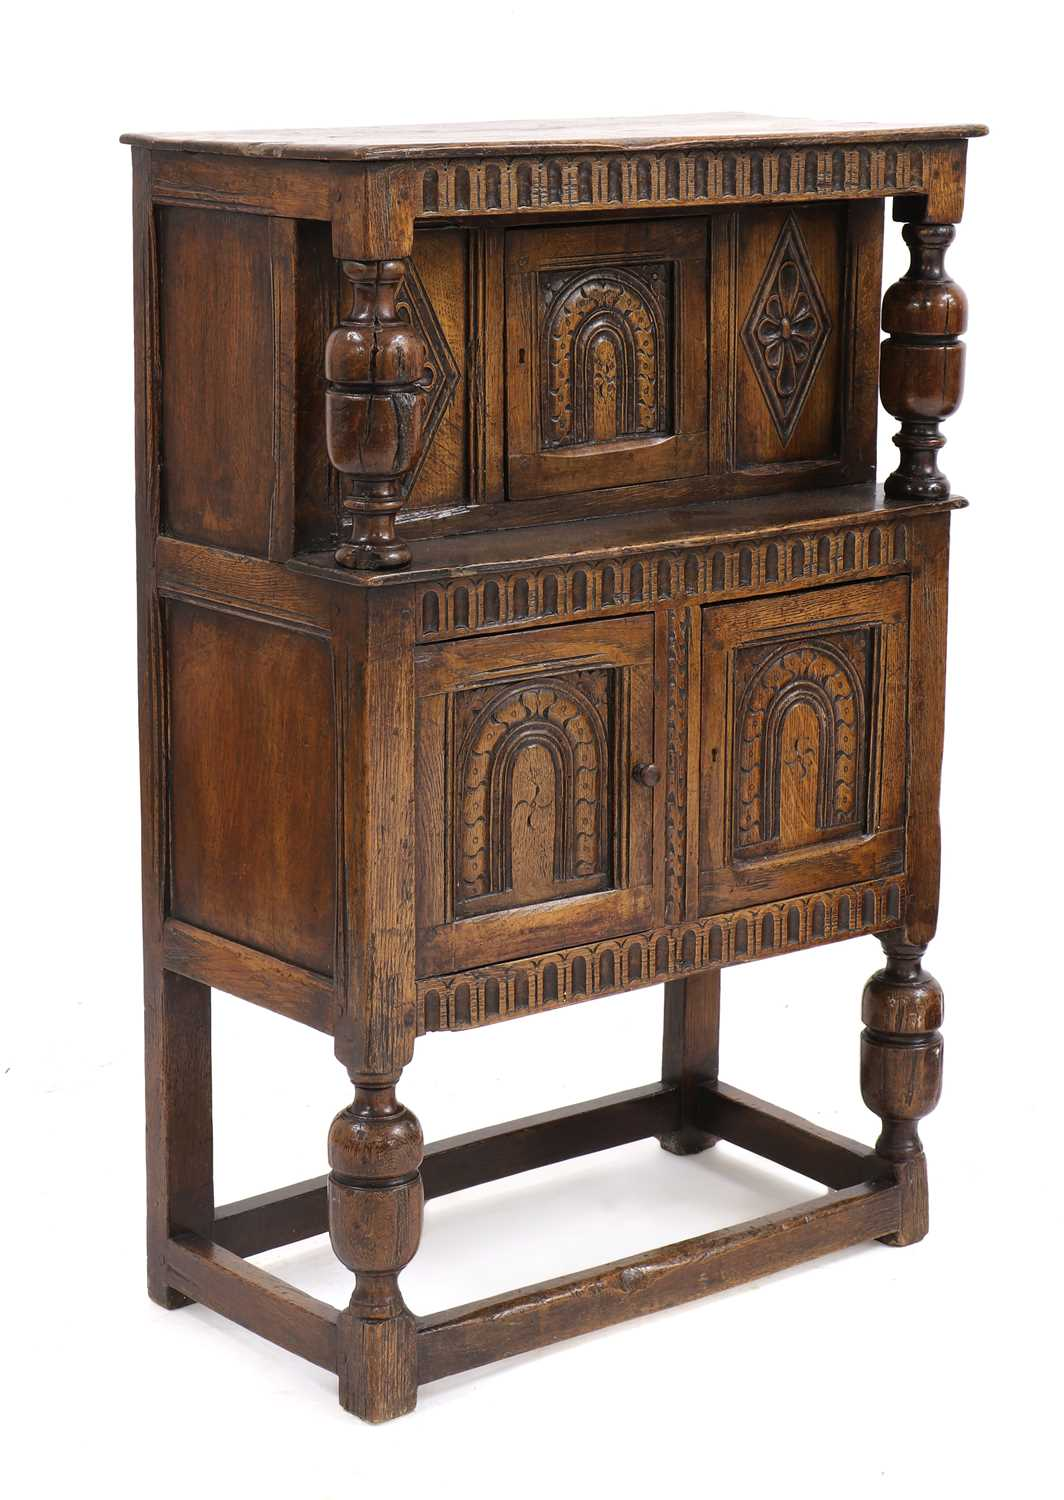 A small oak court cupboard, - Image 2 of 6